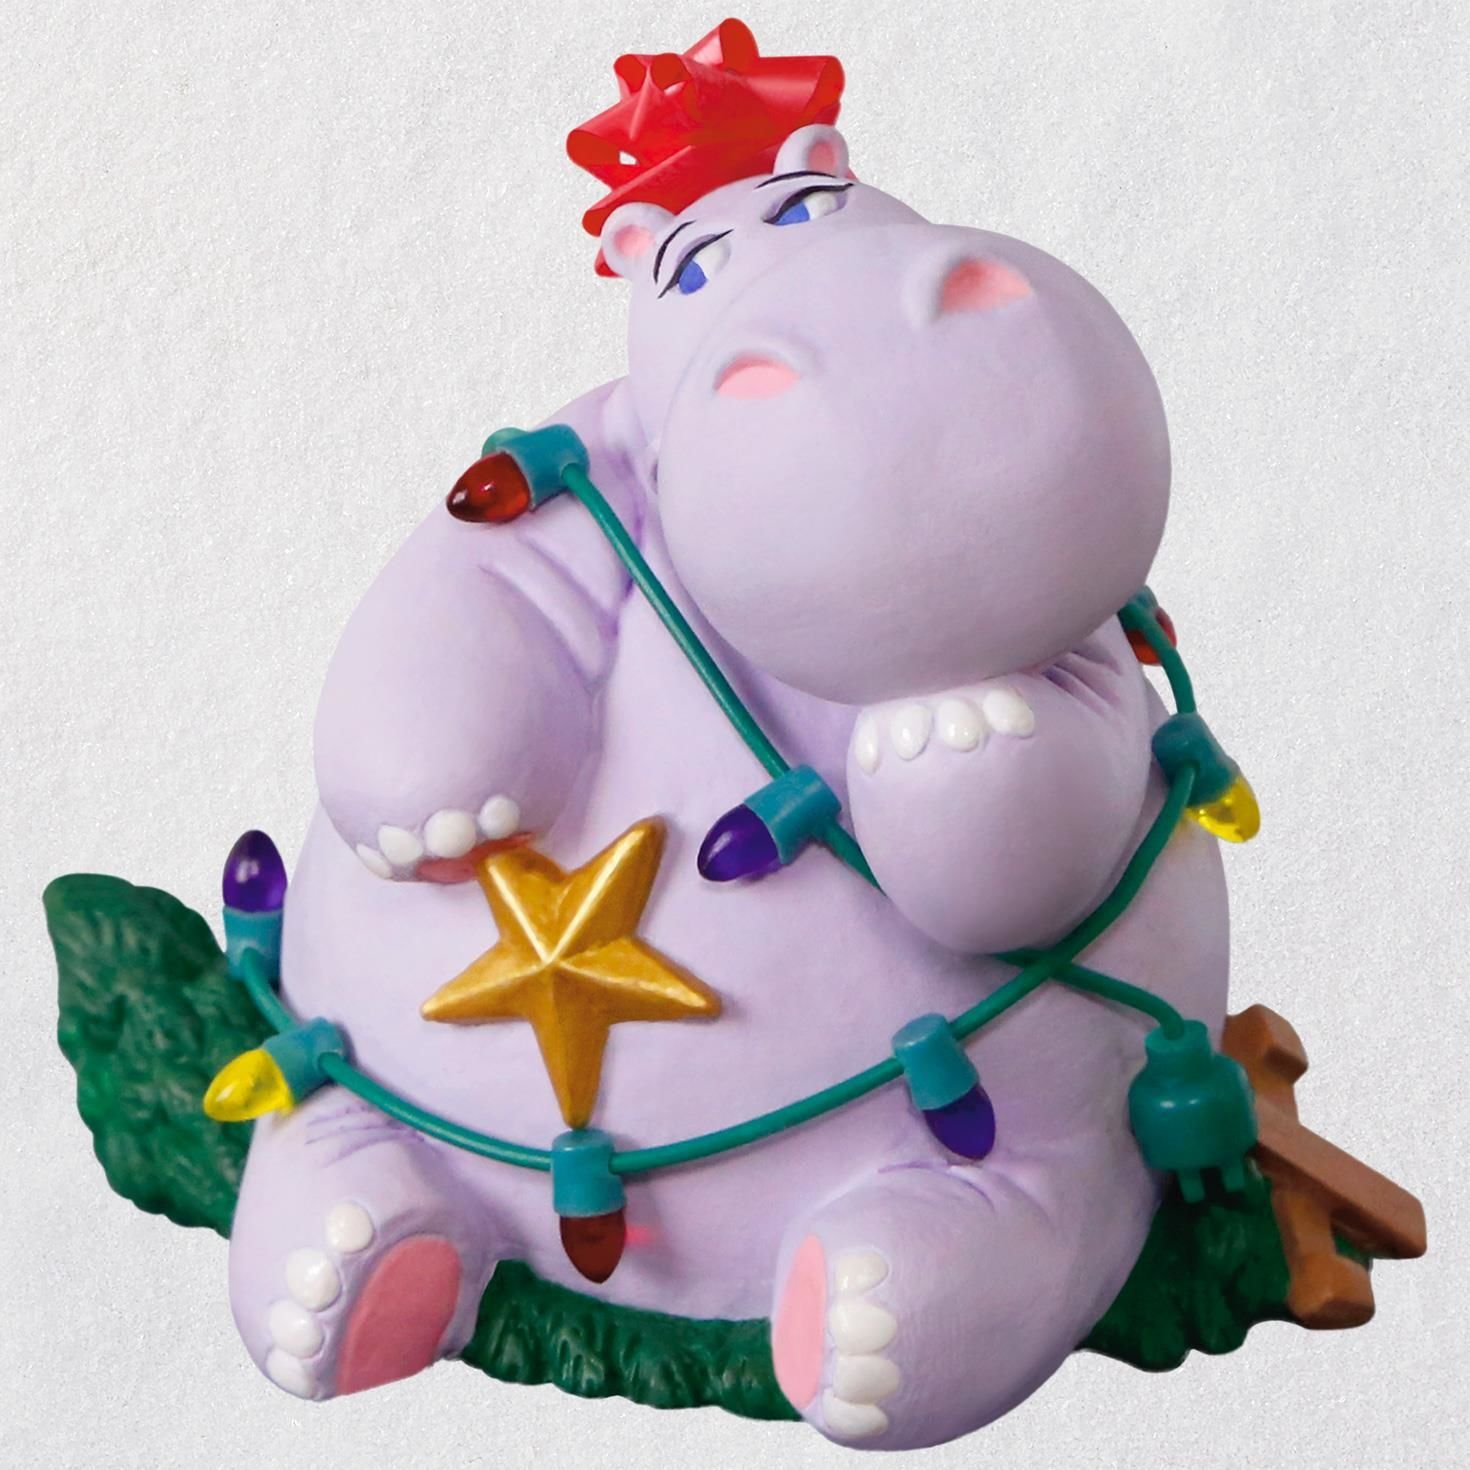 Hallmark I Want a Hippopotamus for Christmas Musical Ornament keepsake-ornaments Animals & Nature